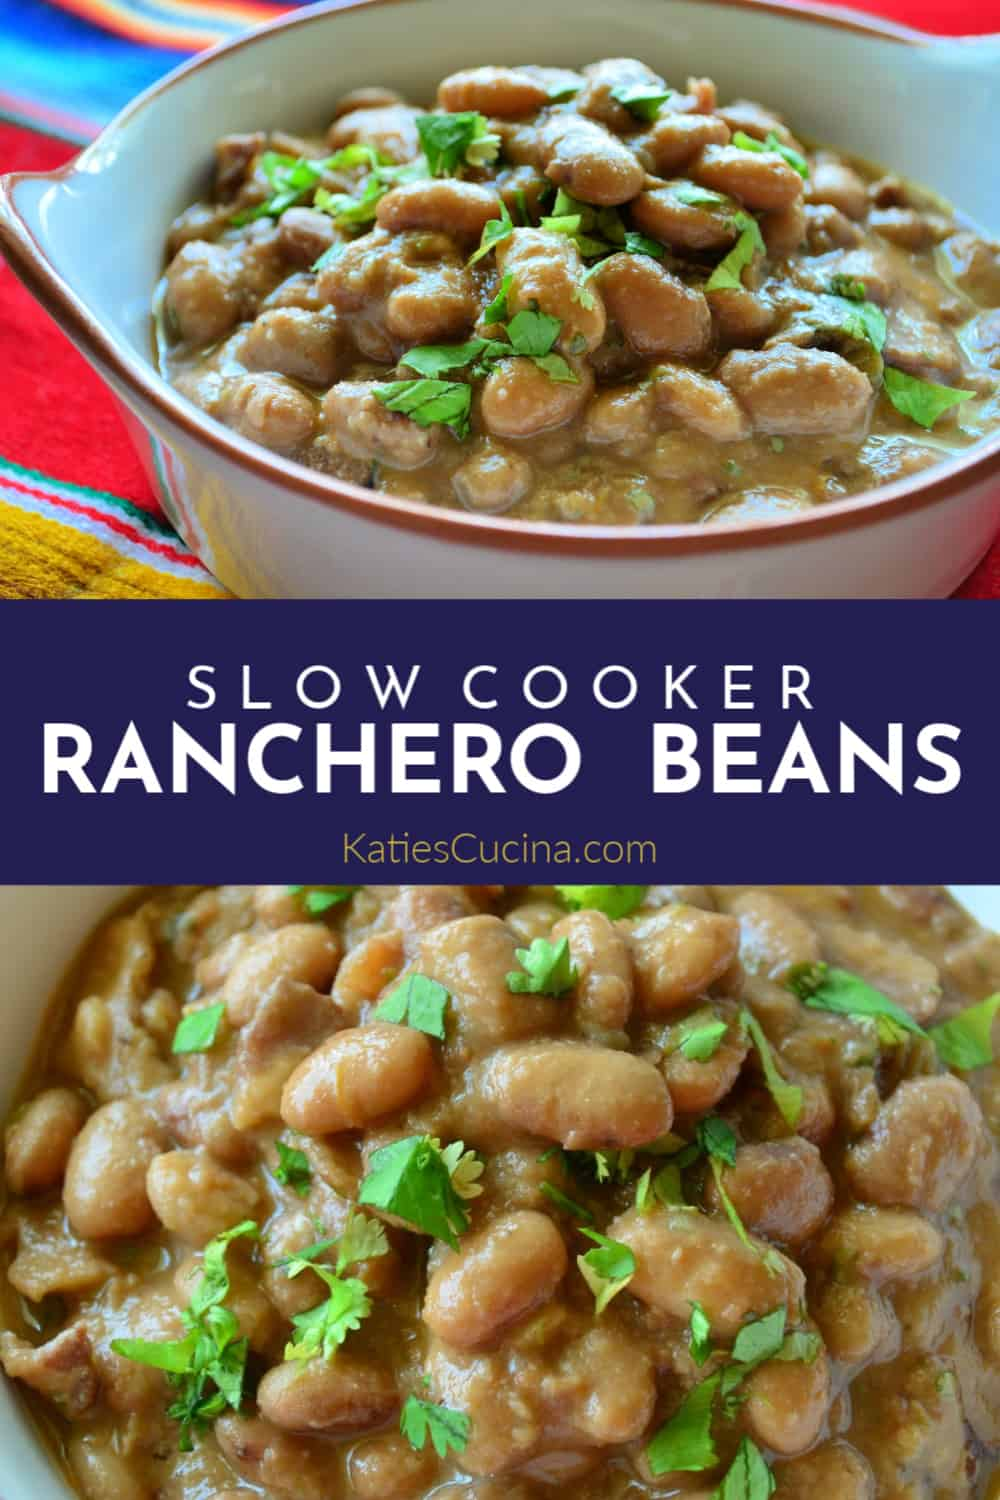 Slow Cooker Ranchero Beans Photo Collage with Text